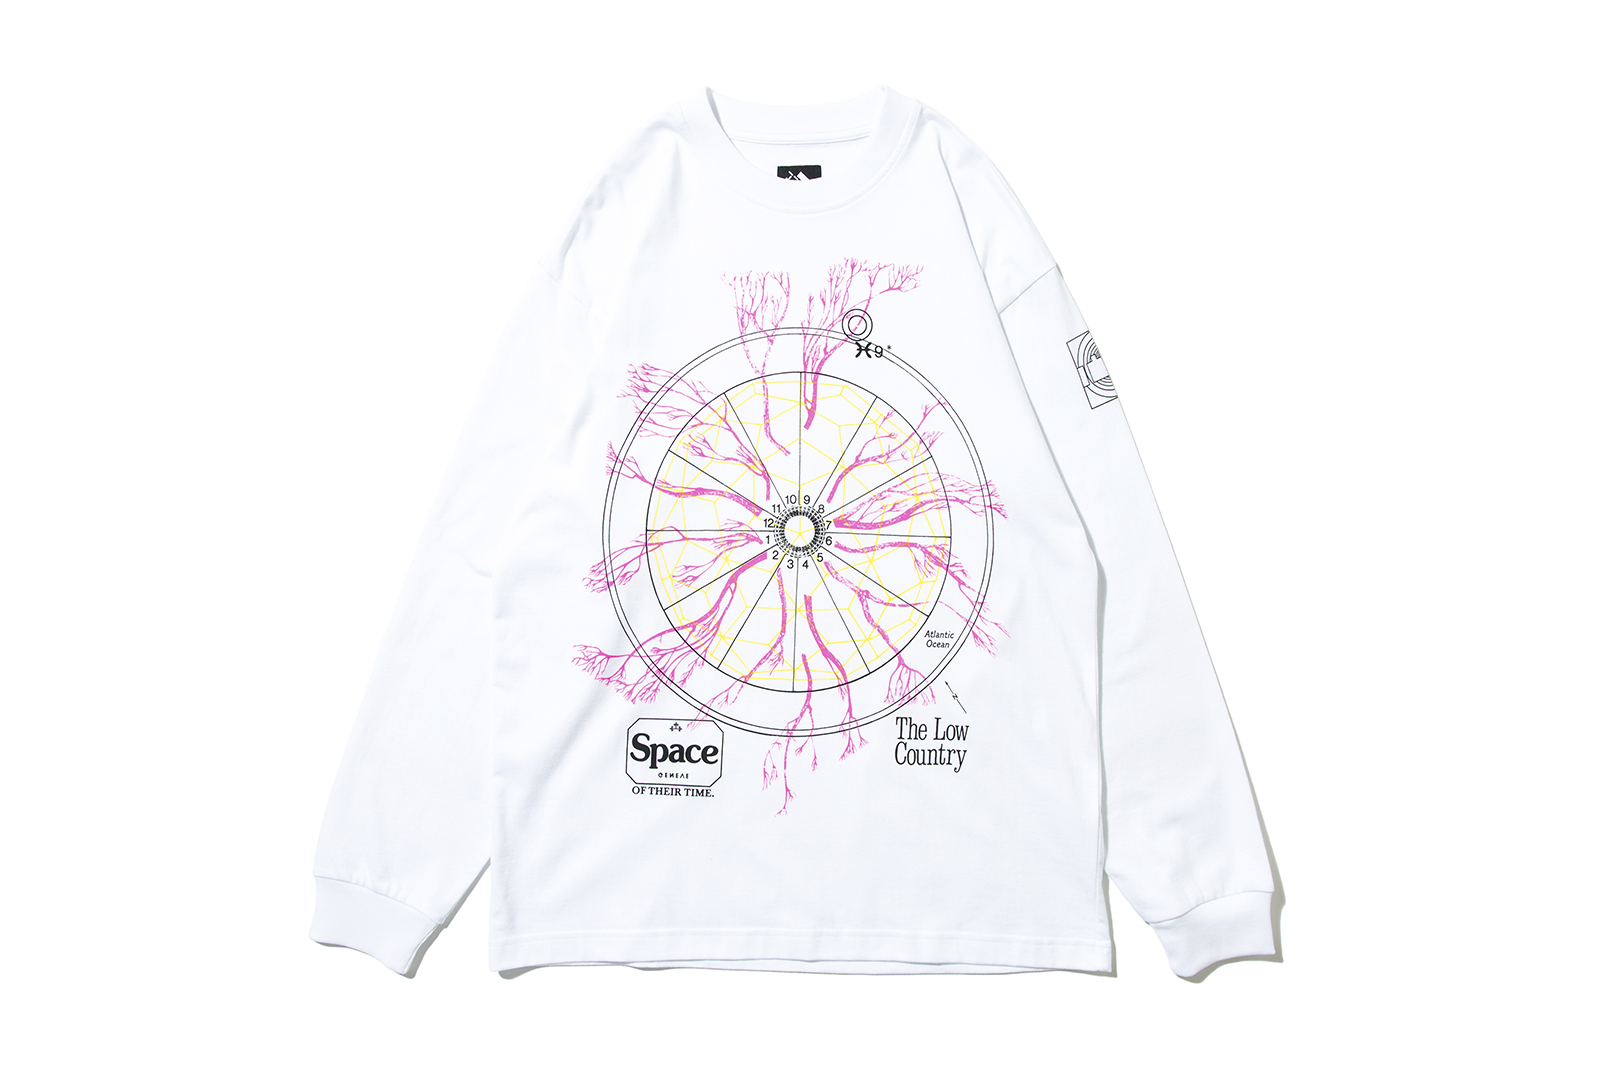 low-country-longsleeve-white_p2